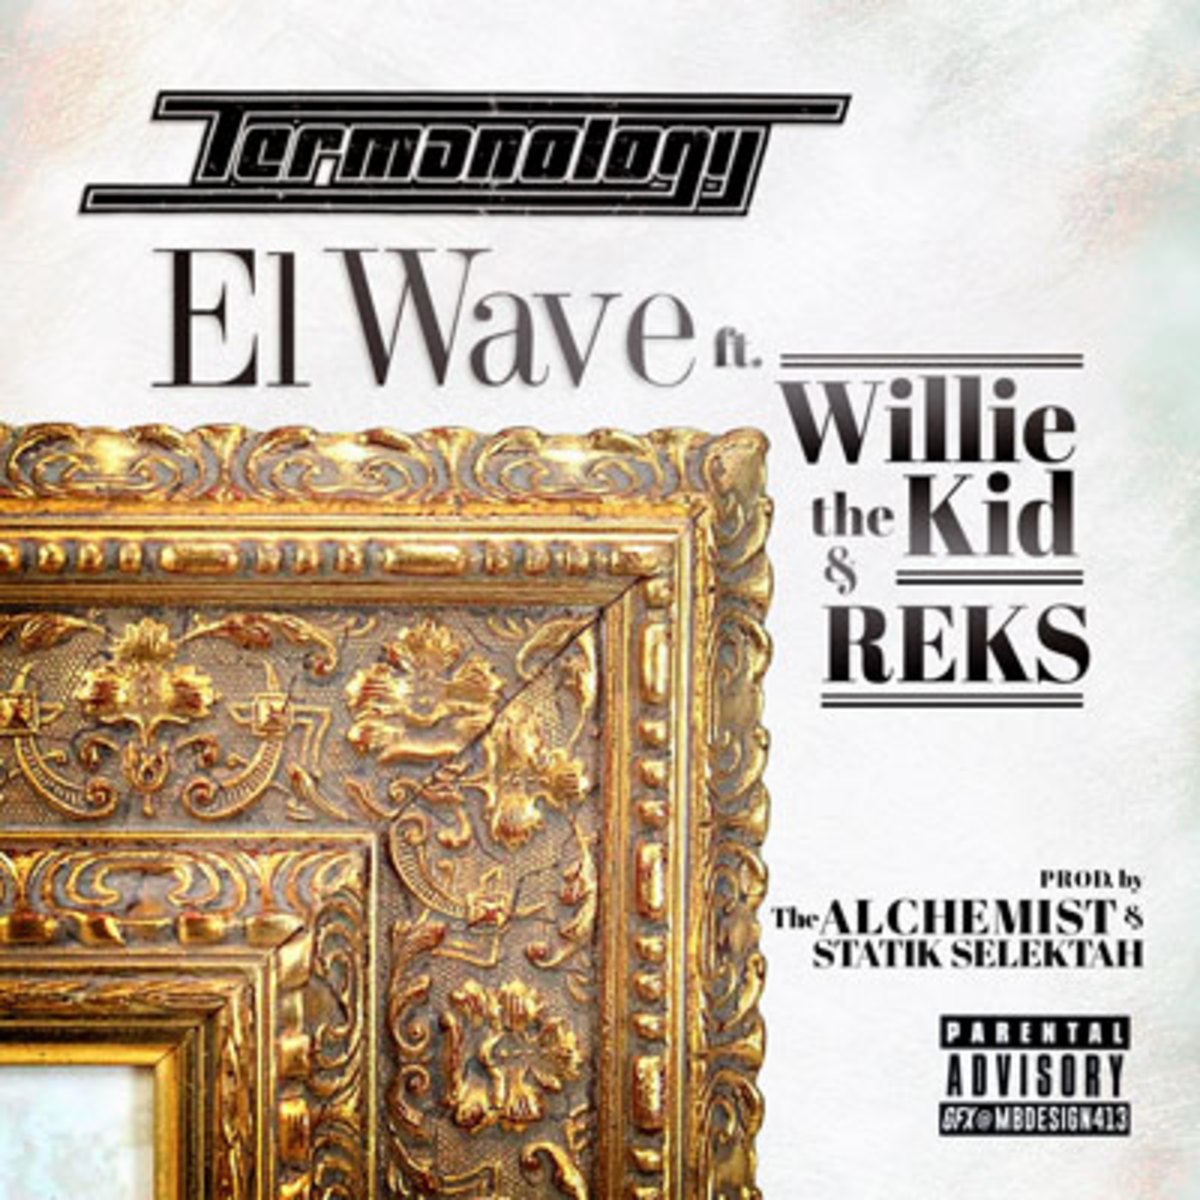 termanology-elwave1.jpg